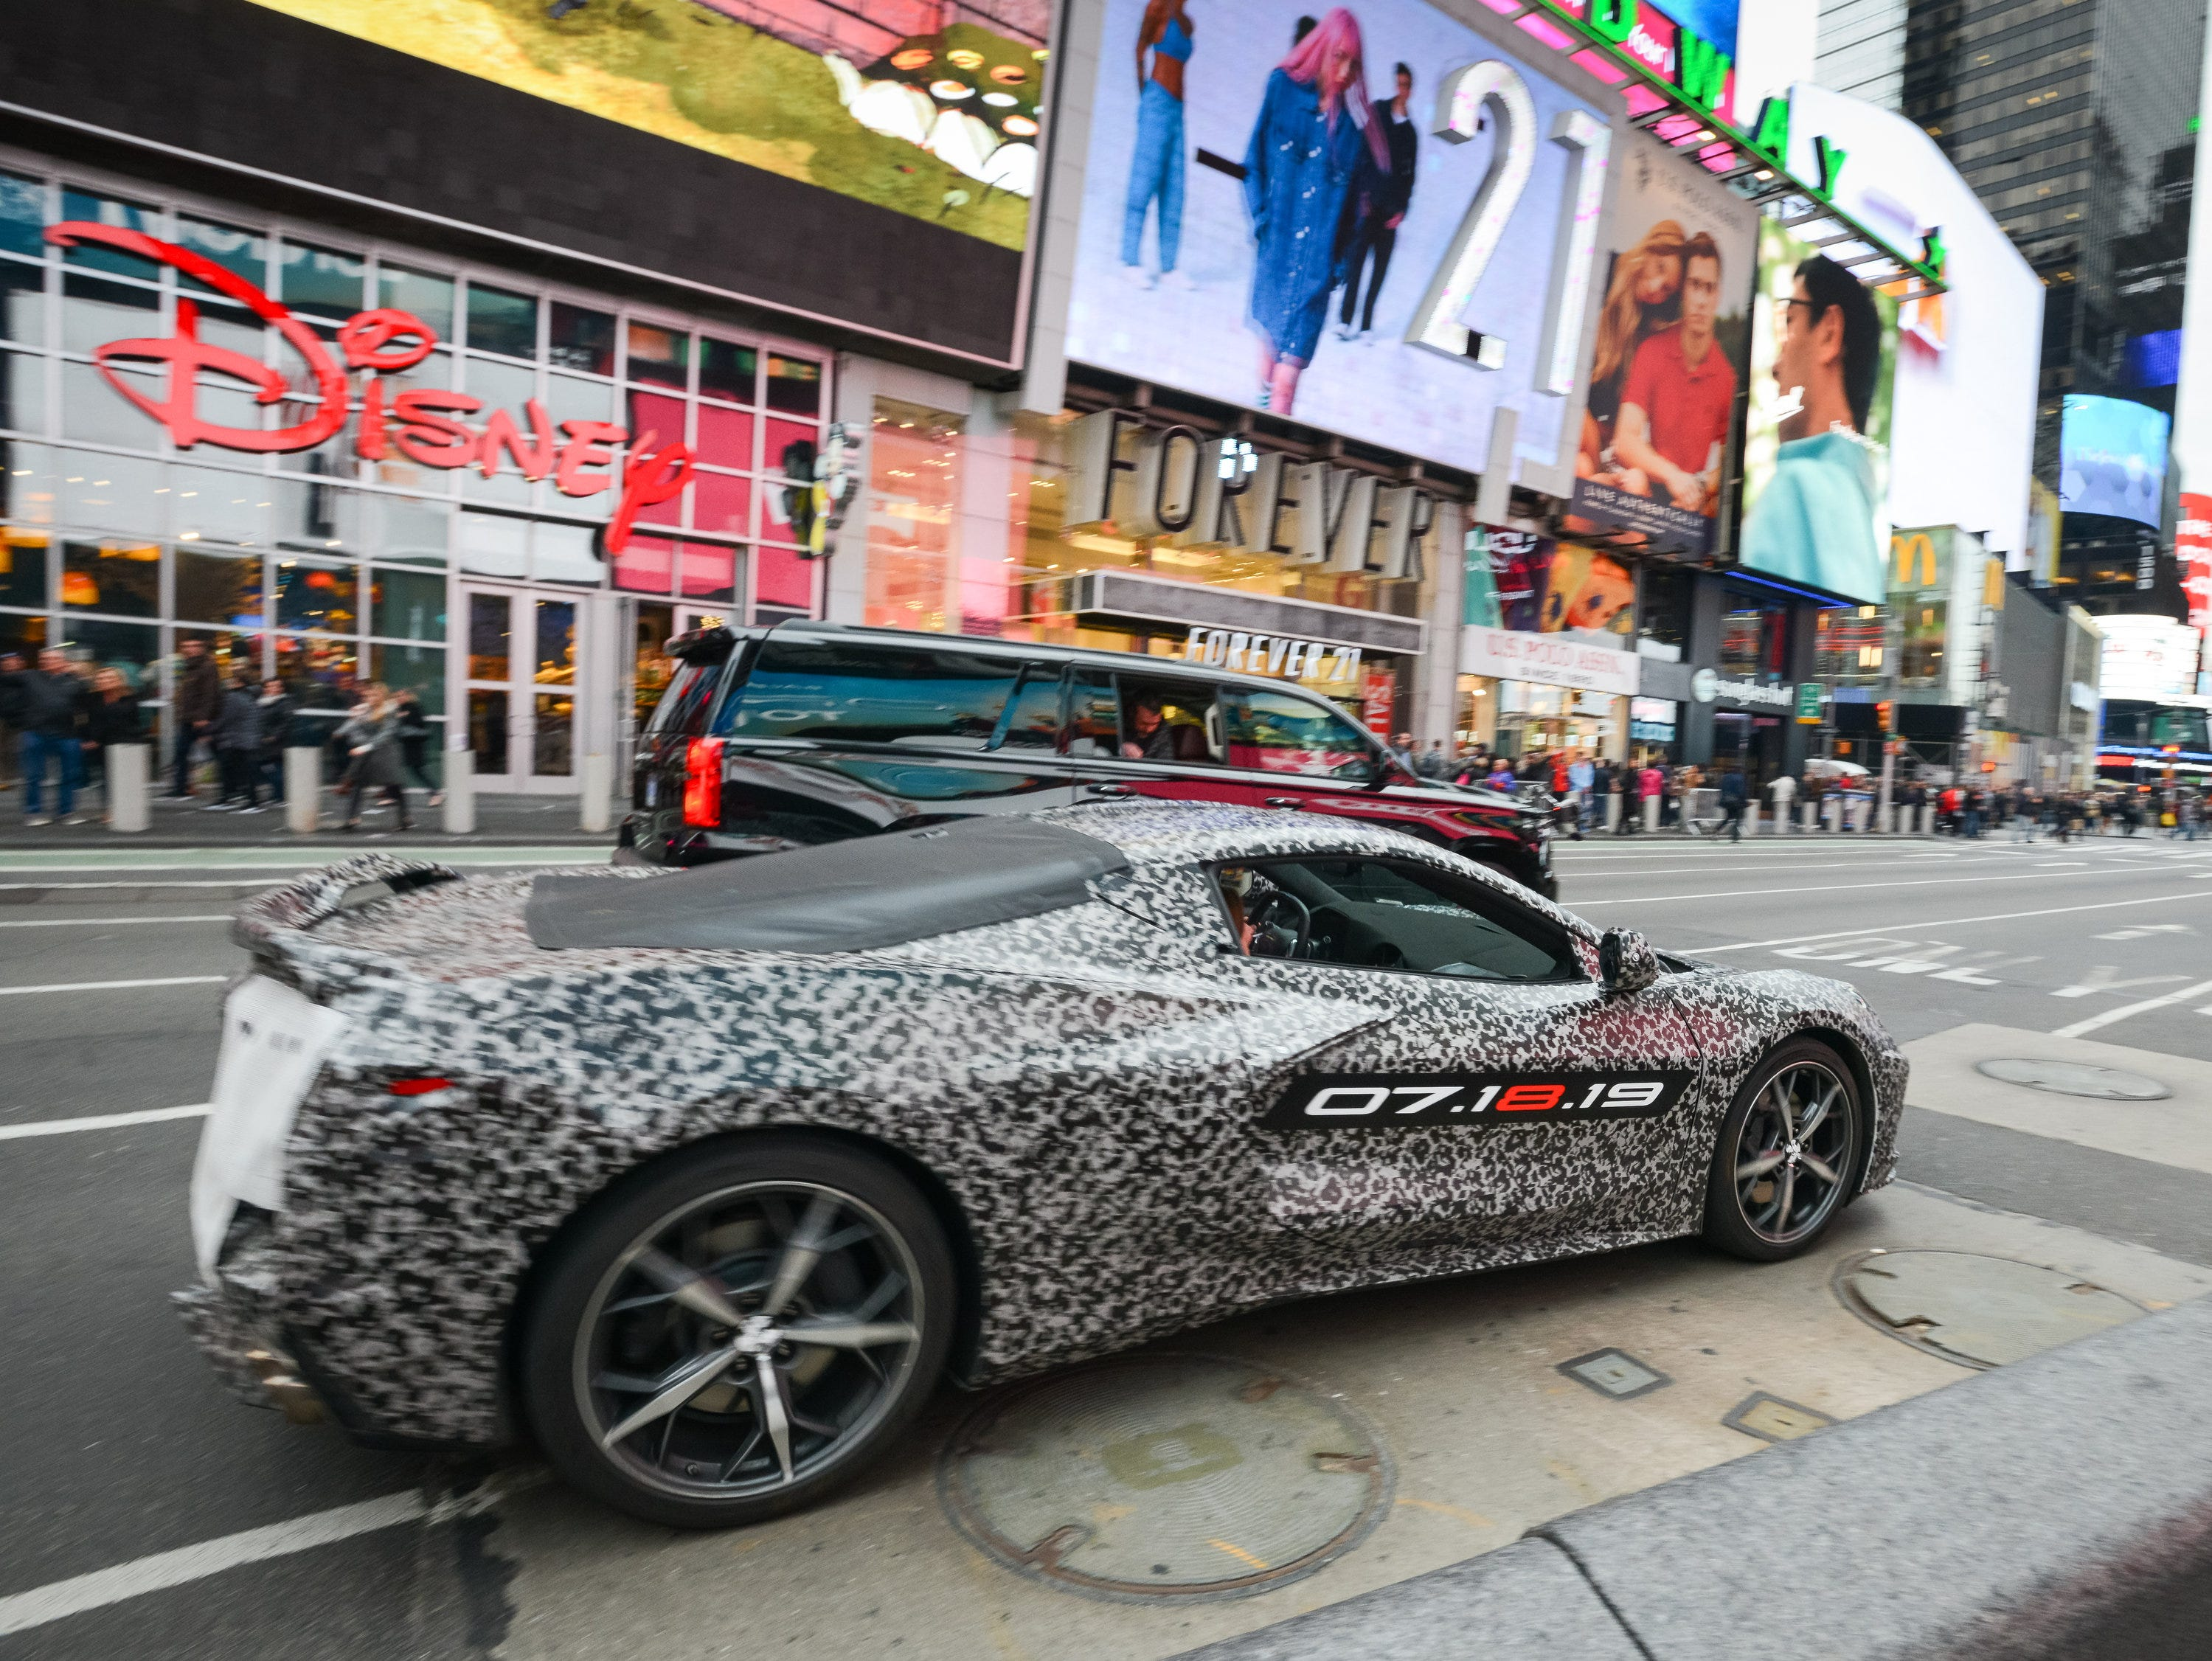 Chevrolet announces the next generation Corvette will debut 07.18.19. A camouflaged next generation Corvette travels down 7th Avenue near Times Square Thursday, April 11, 2019 in New York, New York.